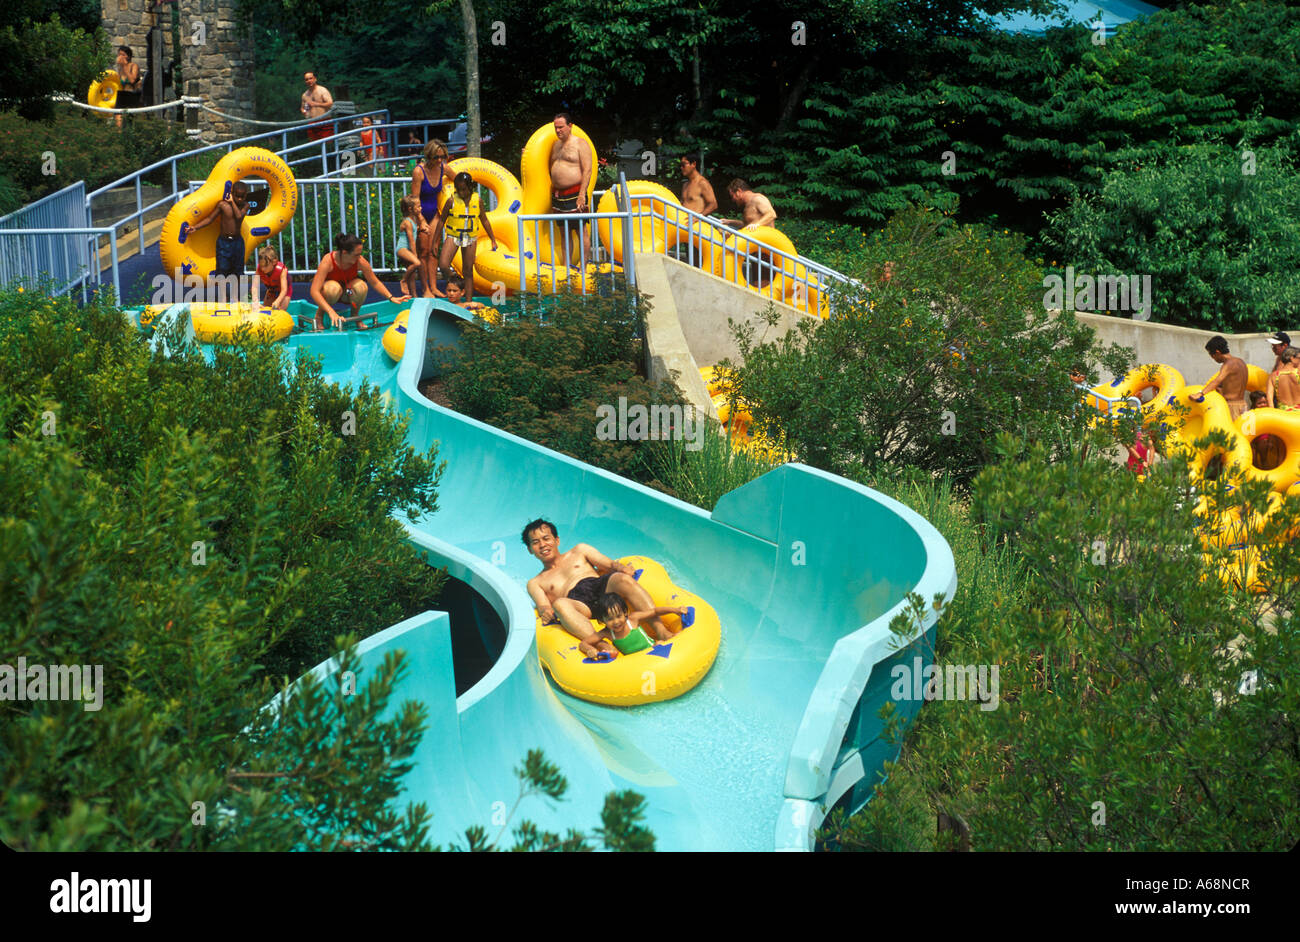 Busch Gardens Williamsburg Virginia Stock Photos Busch Gardens